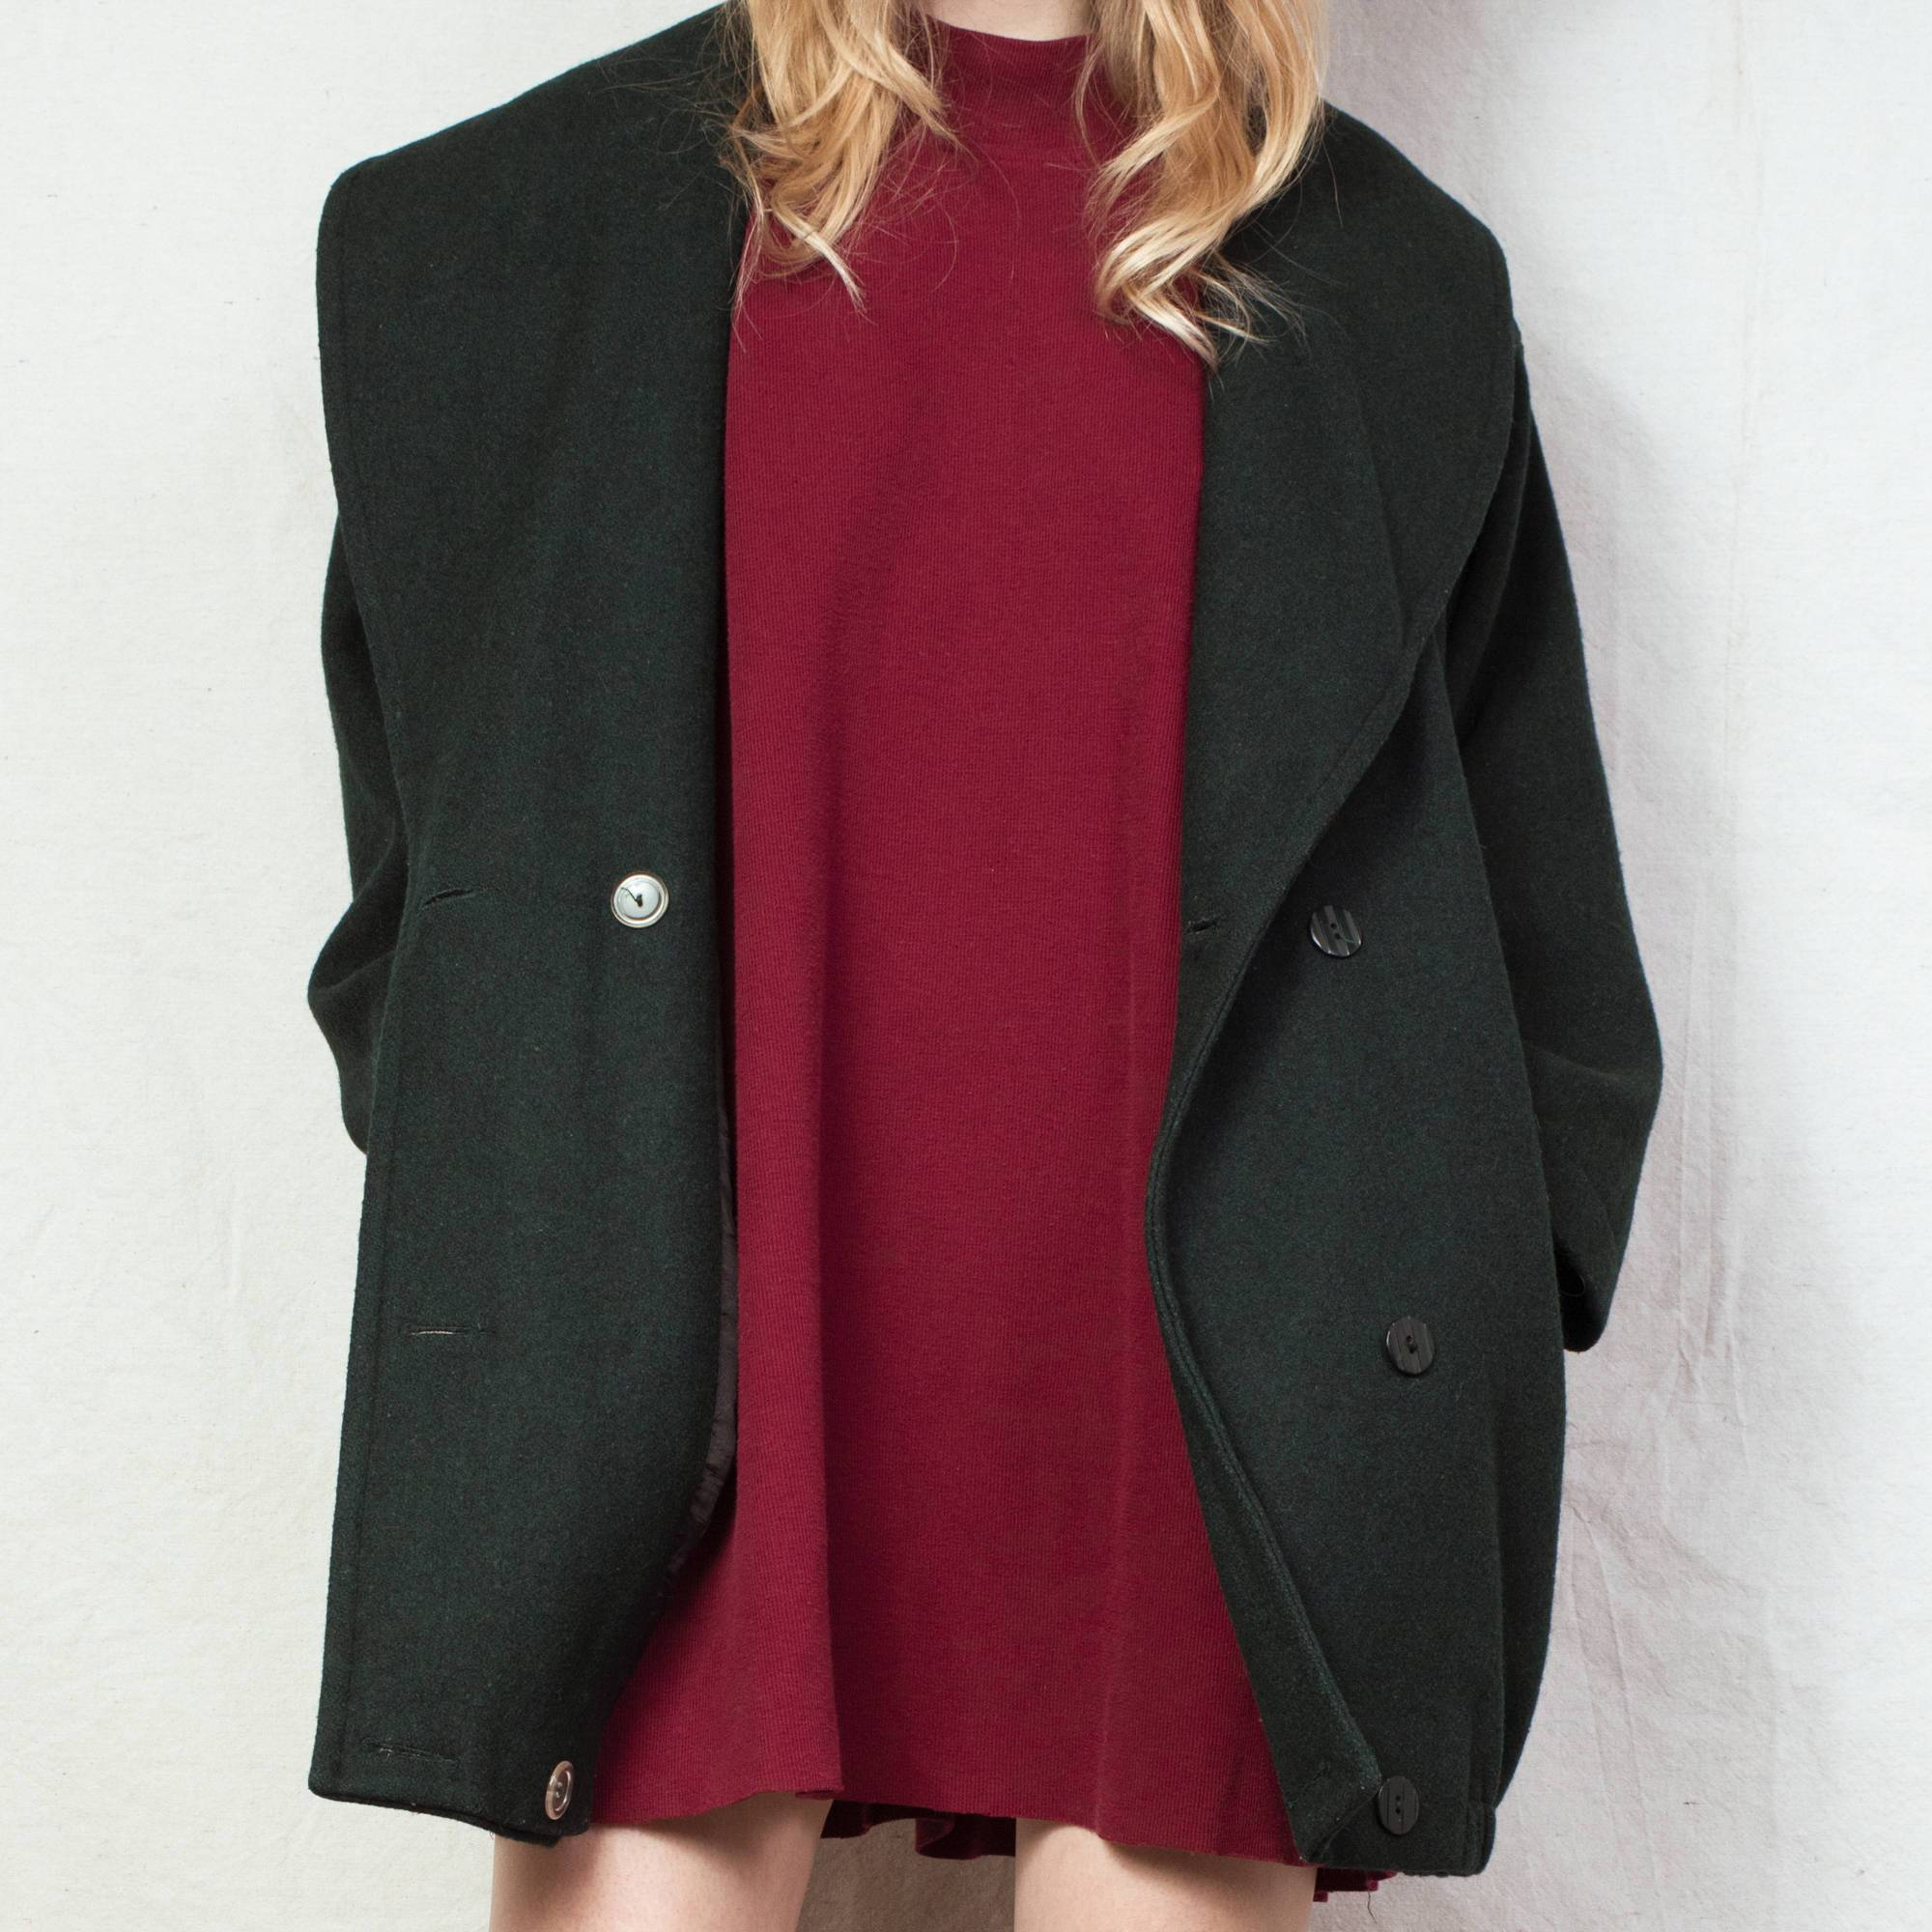 Vintage Forest Green Wool Coat / S - Closed Caption